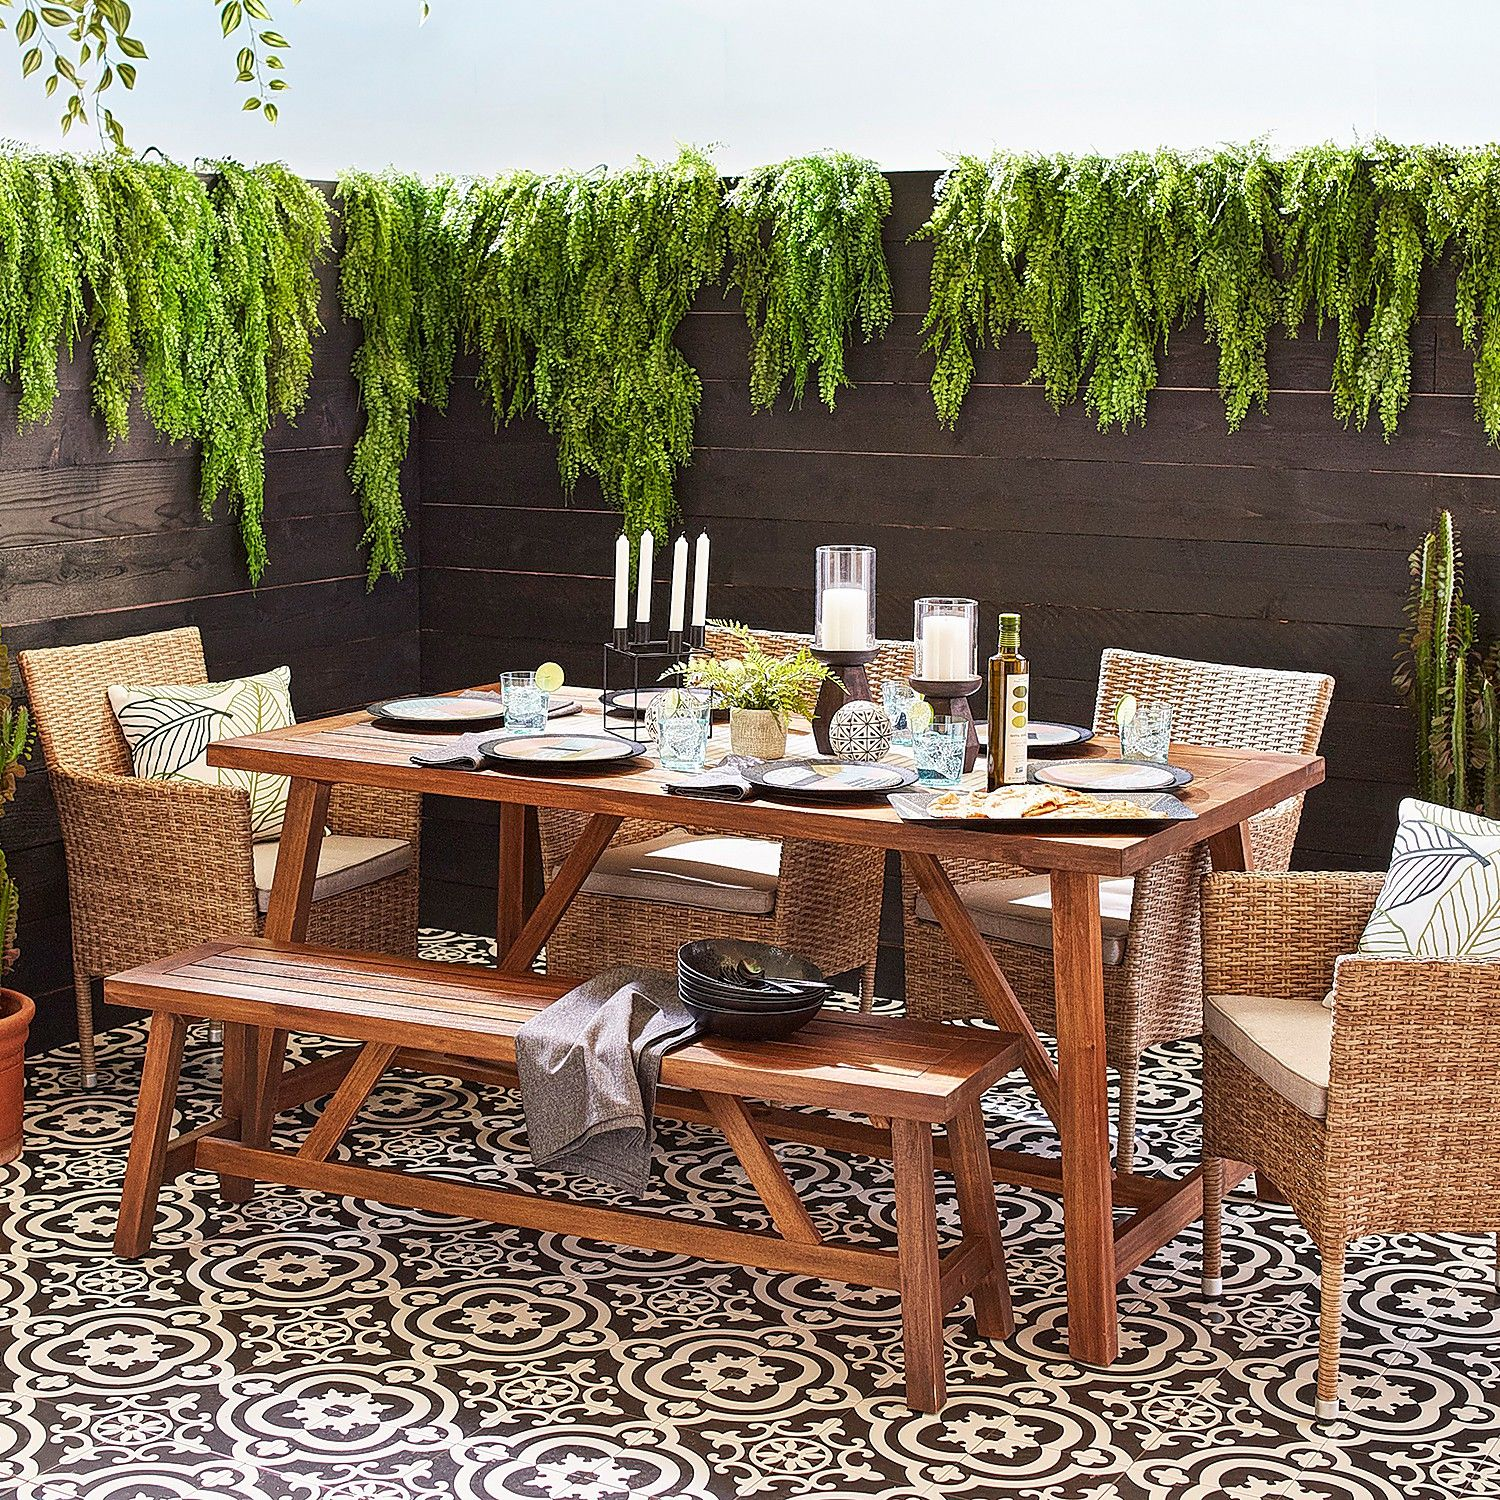 Beautiful outdoor garden   furniture